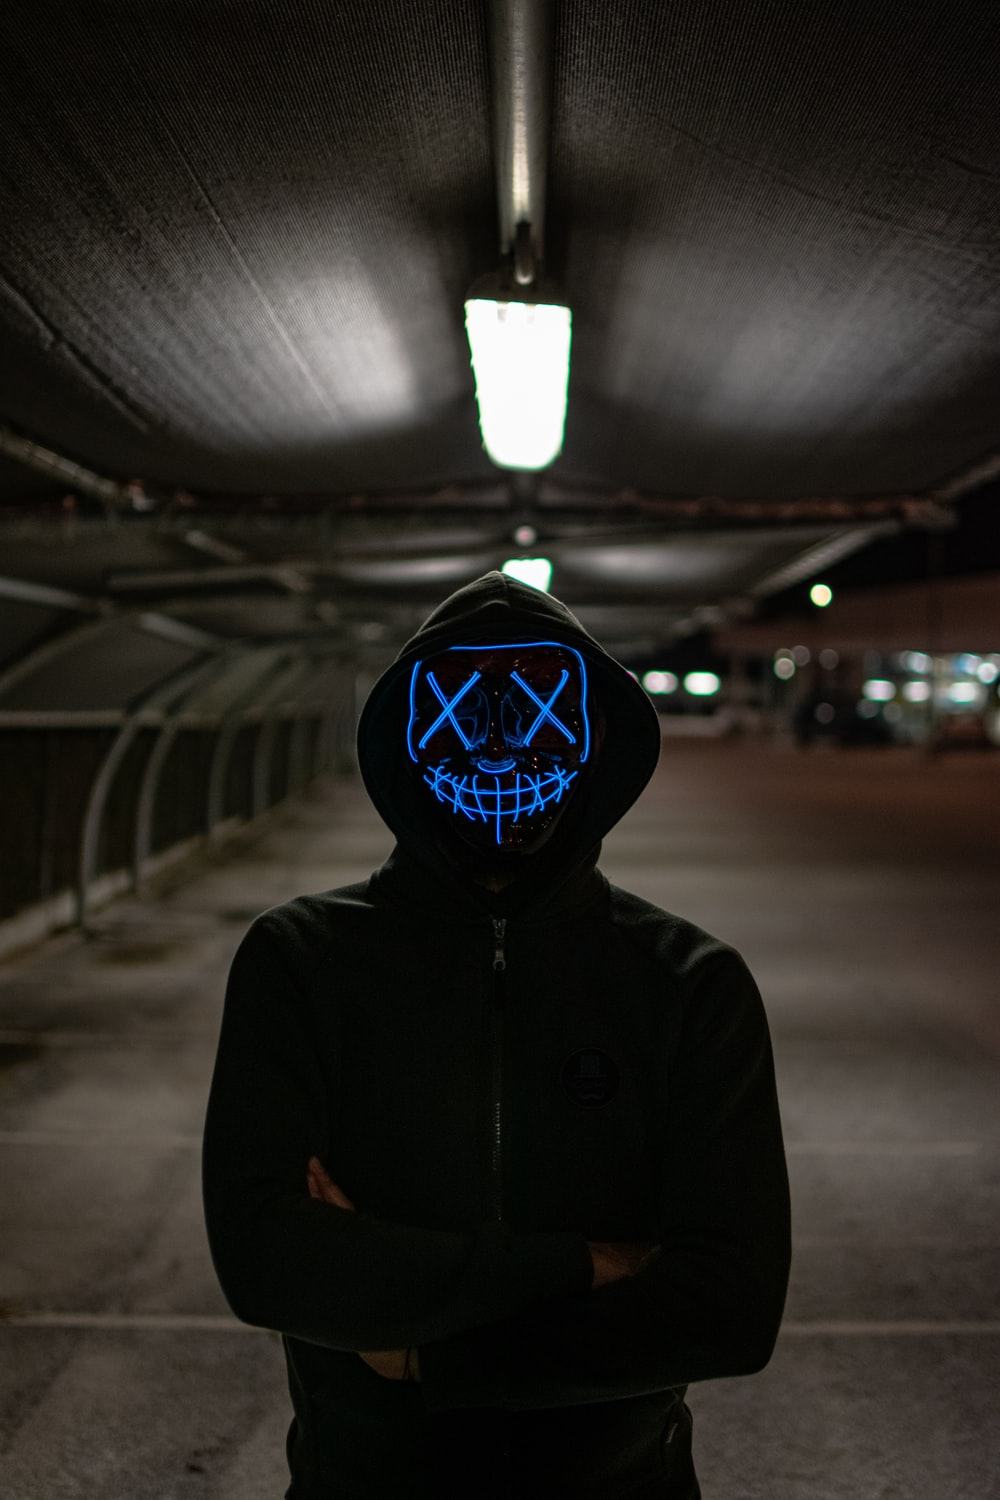 man in black hoodie wearing blue and white mask